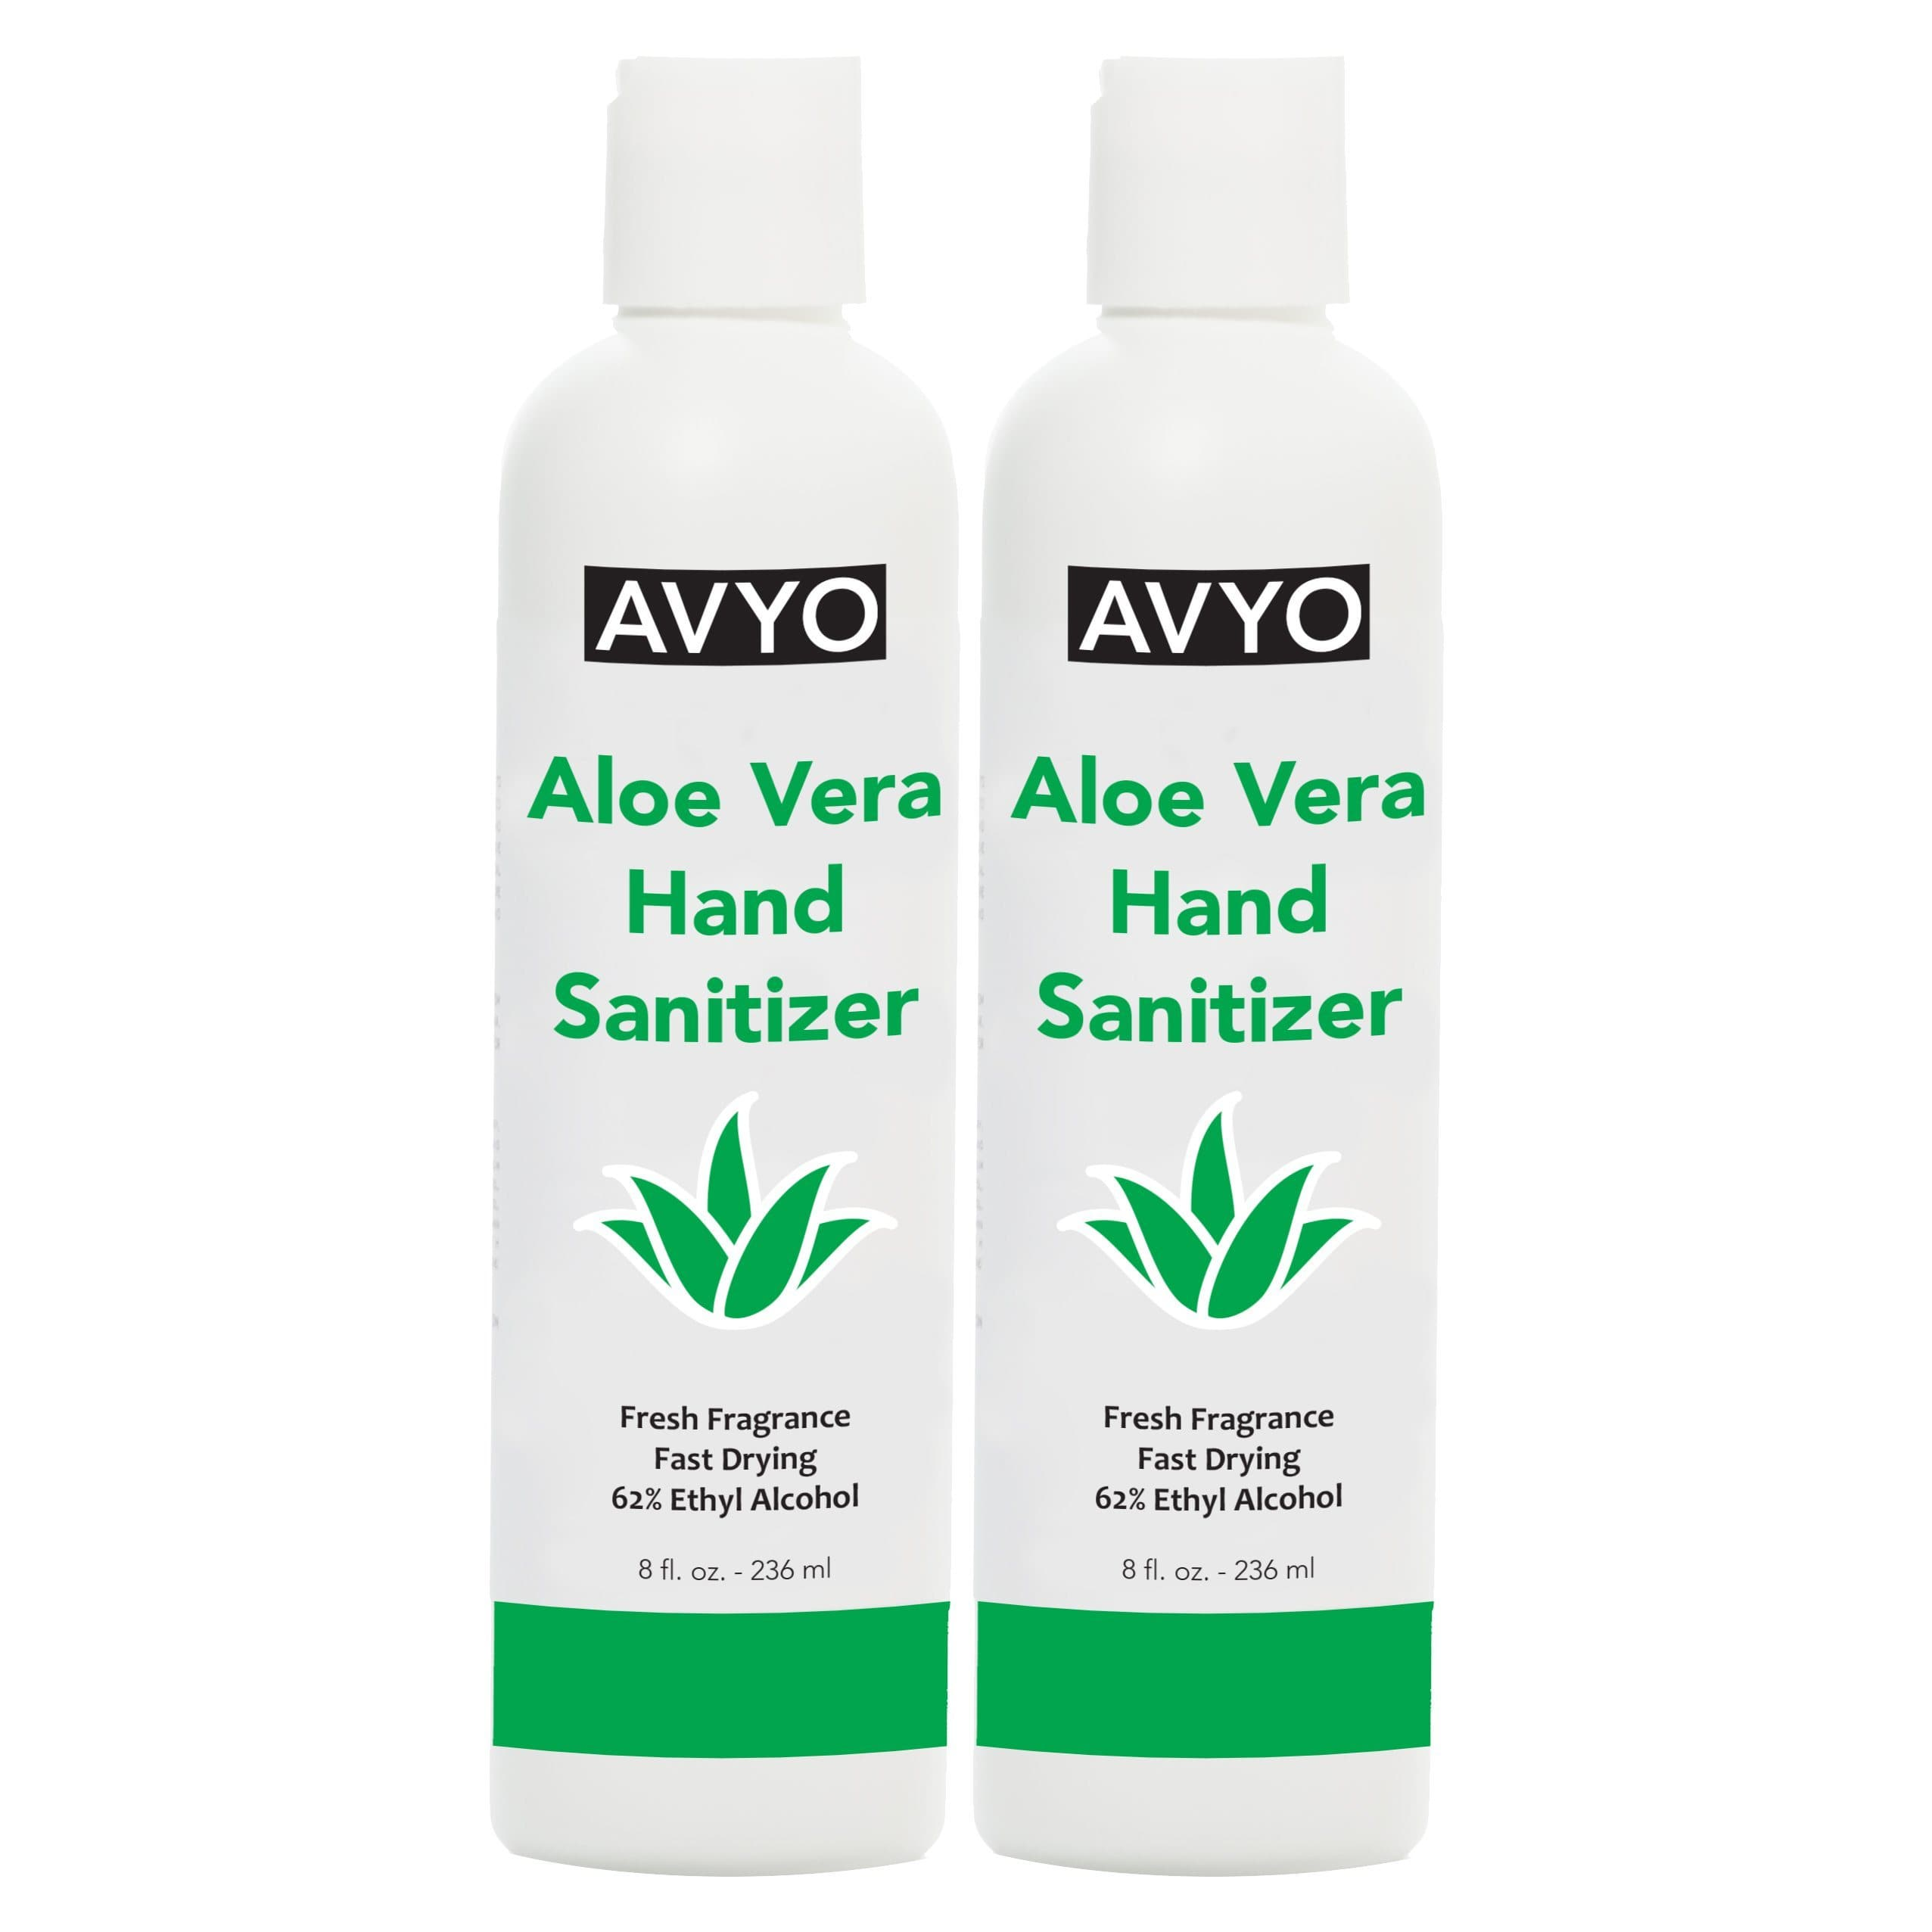 Aloe Vera Hand Sanitizer | Ethyl Alcohol 62% | Gel | In Stock Made in USA | AVYO | AVYO | SHSalons.com